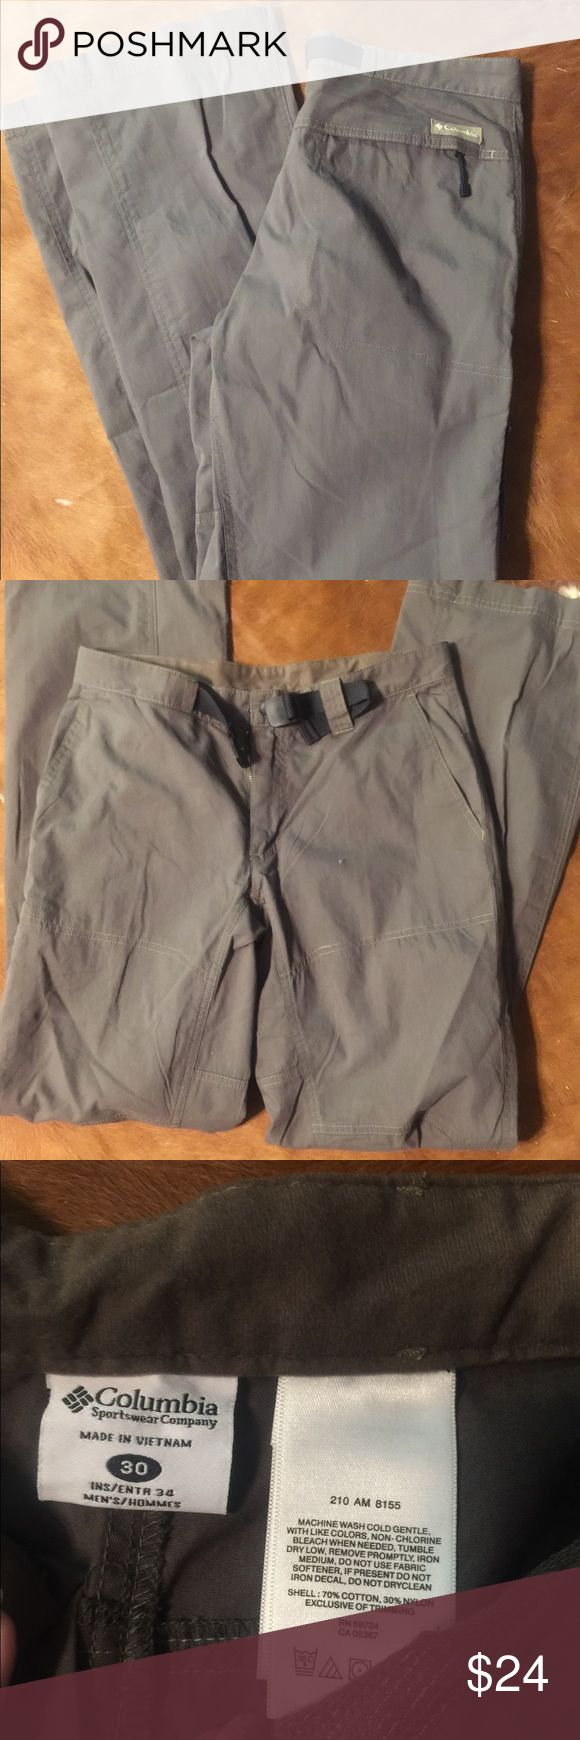 NWOT Columbia outdoors pants sz30 NWOT Columbia outdoors light weight pants Sz 30. No holes rips or defects! Great for hiking, camping or fishing!! Columbia Pants Track Pants & Joggers